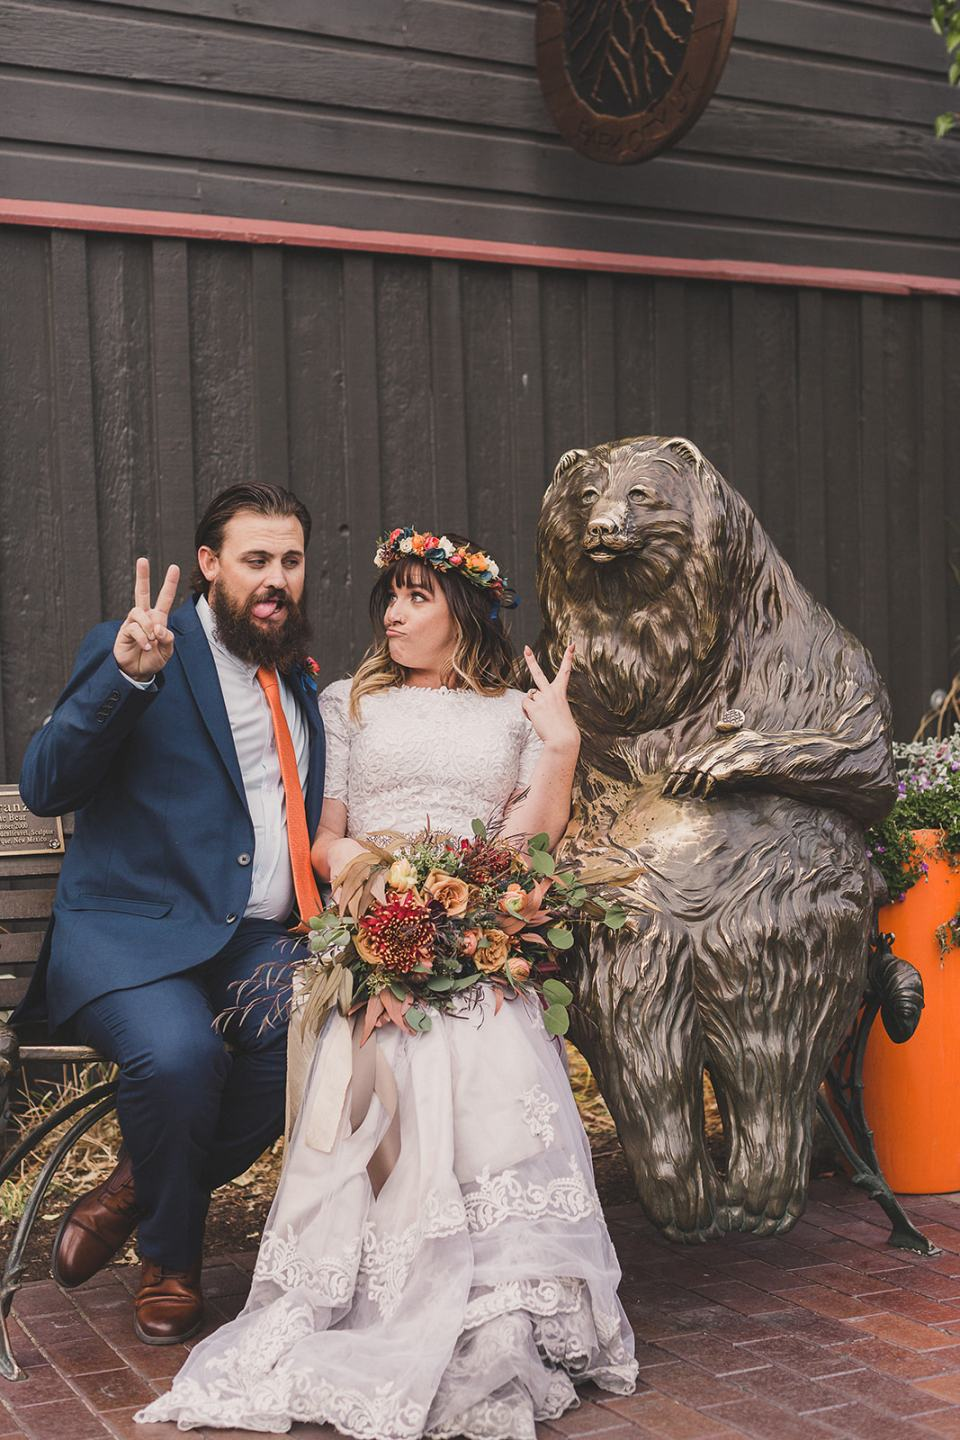 newlyweds pose with bear statue